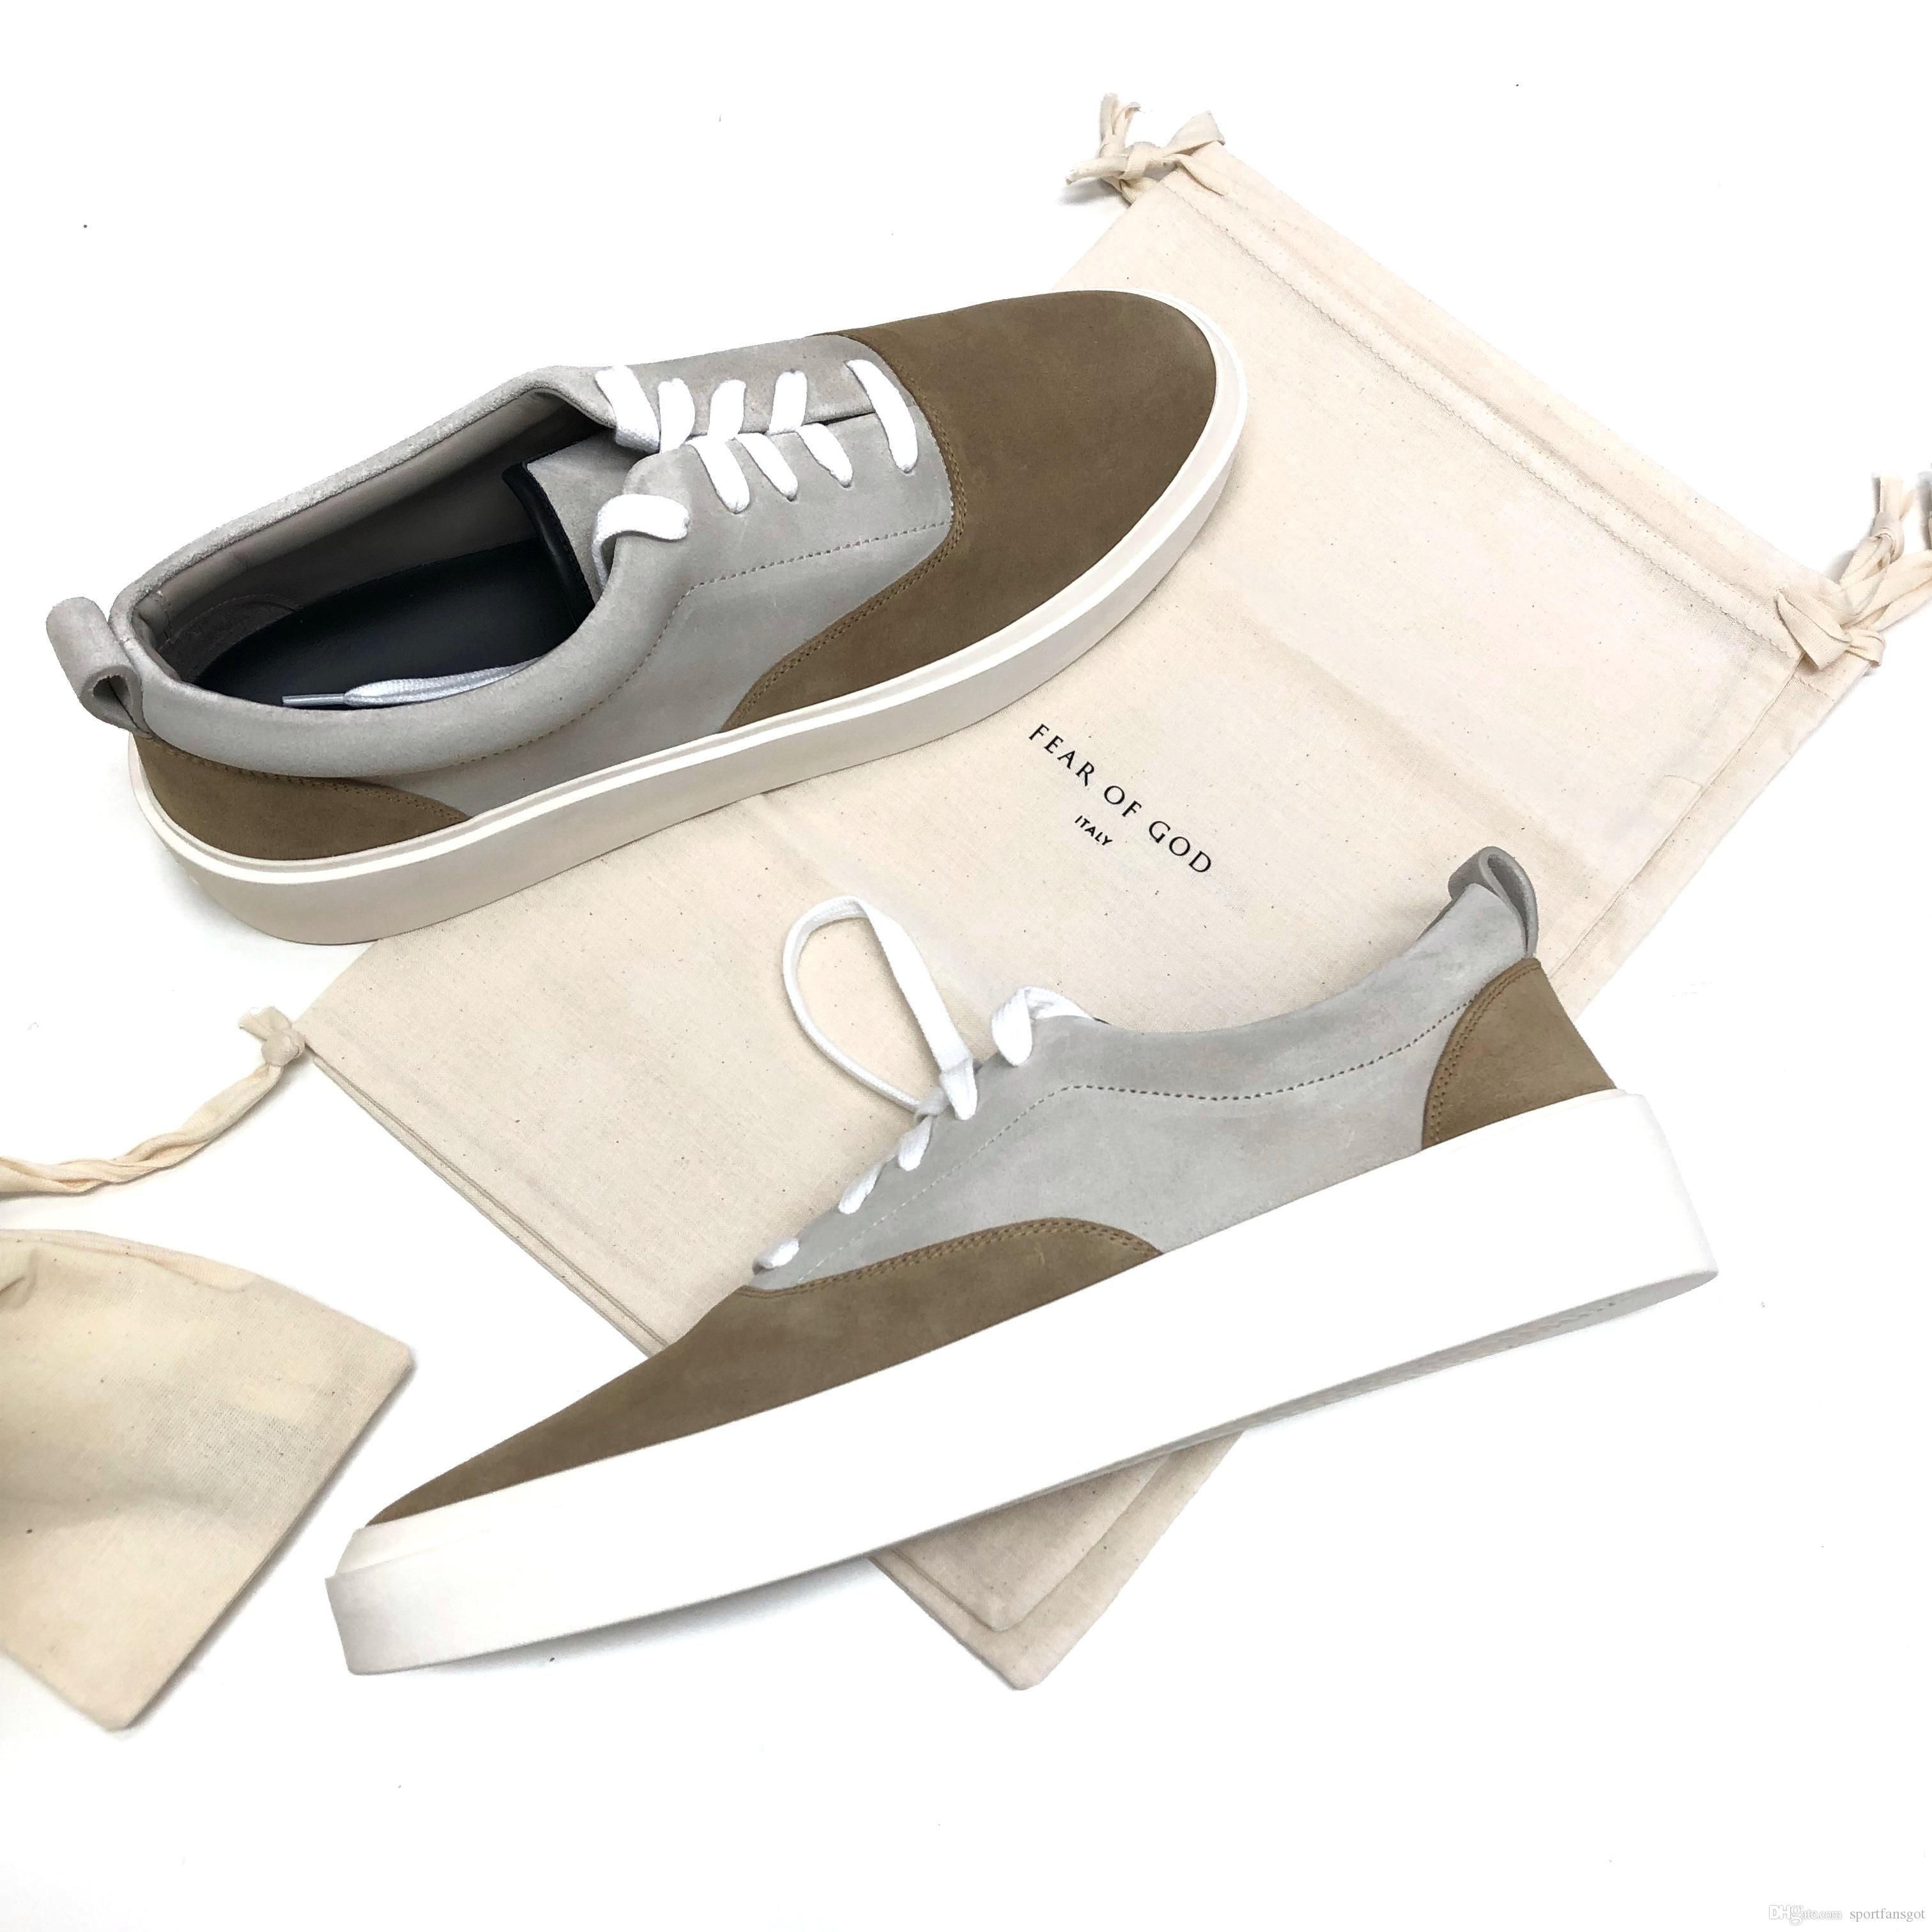 94bdeea2d99 Fear Of God 101 5th Collection Sneakers Fog Jerry Lorenzo Version Fog  Running Shoes Suede Leather Version Size 40 45 Womens Running Shoes Sport  Shoes From ...